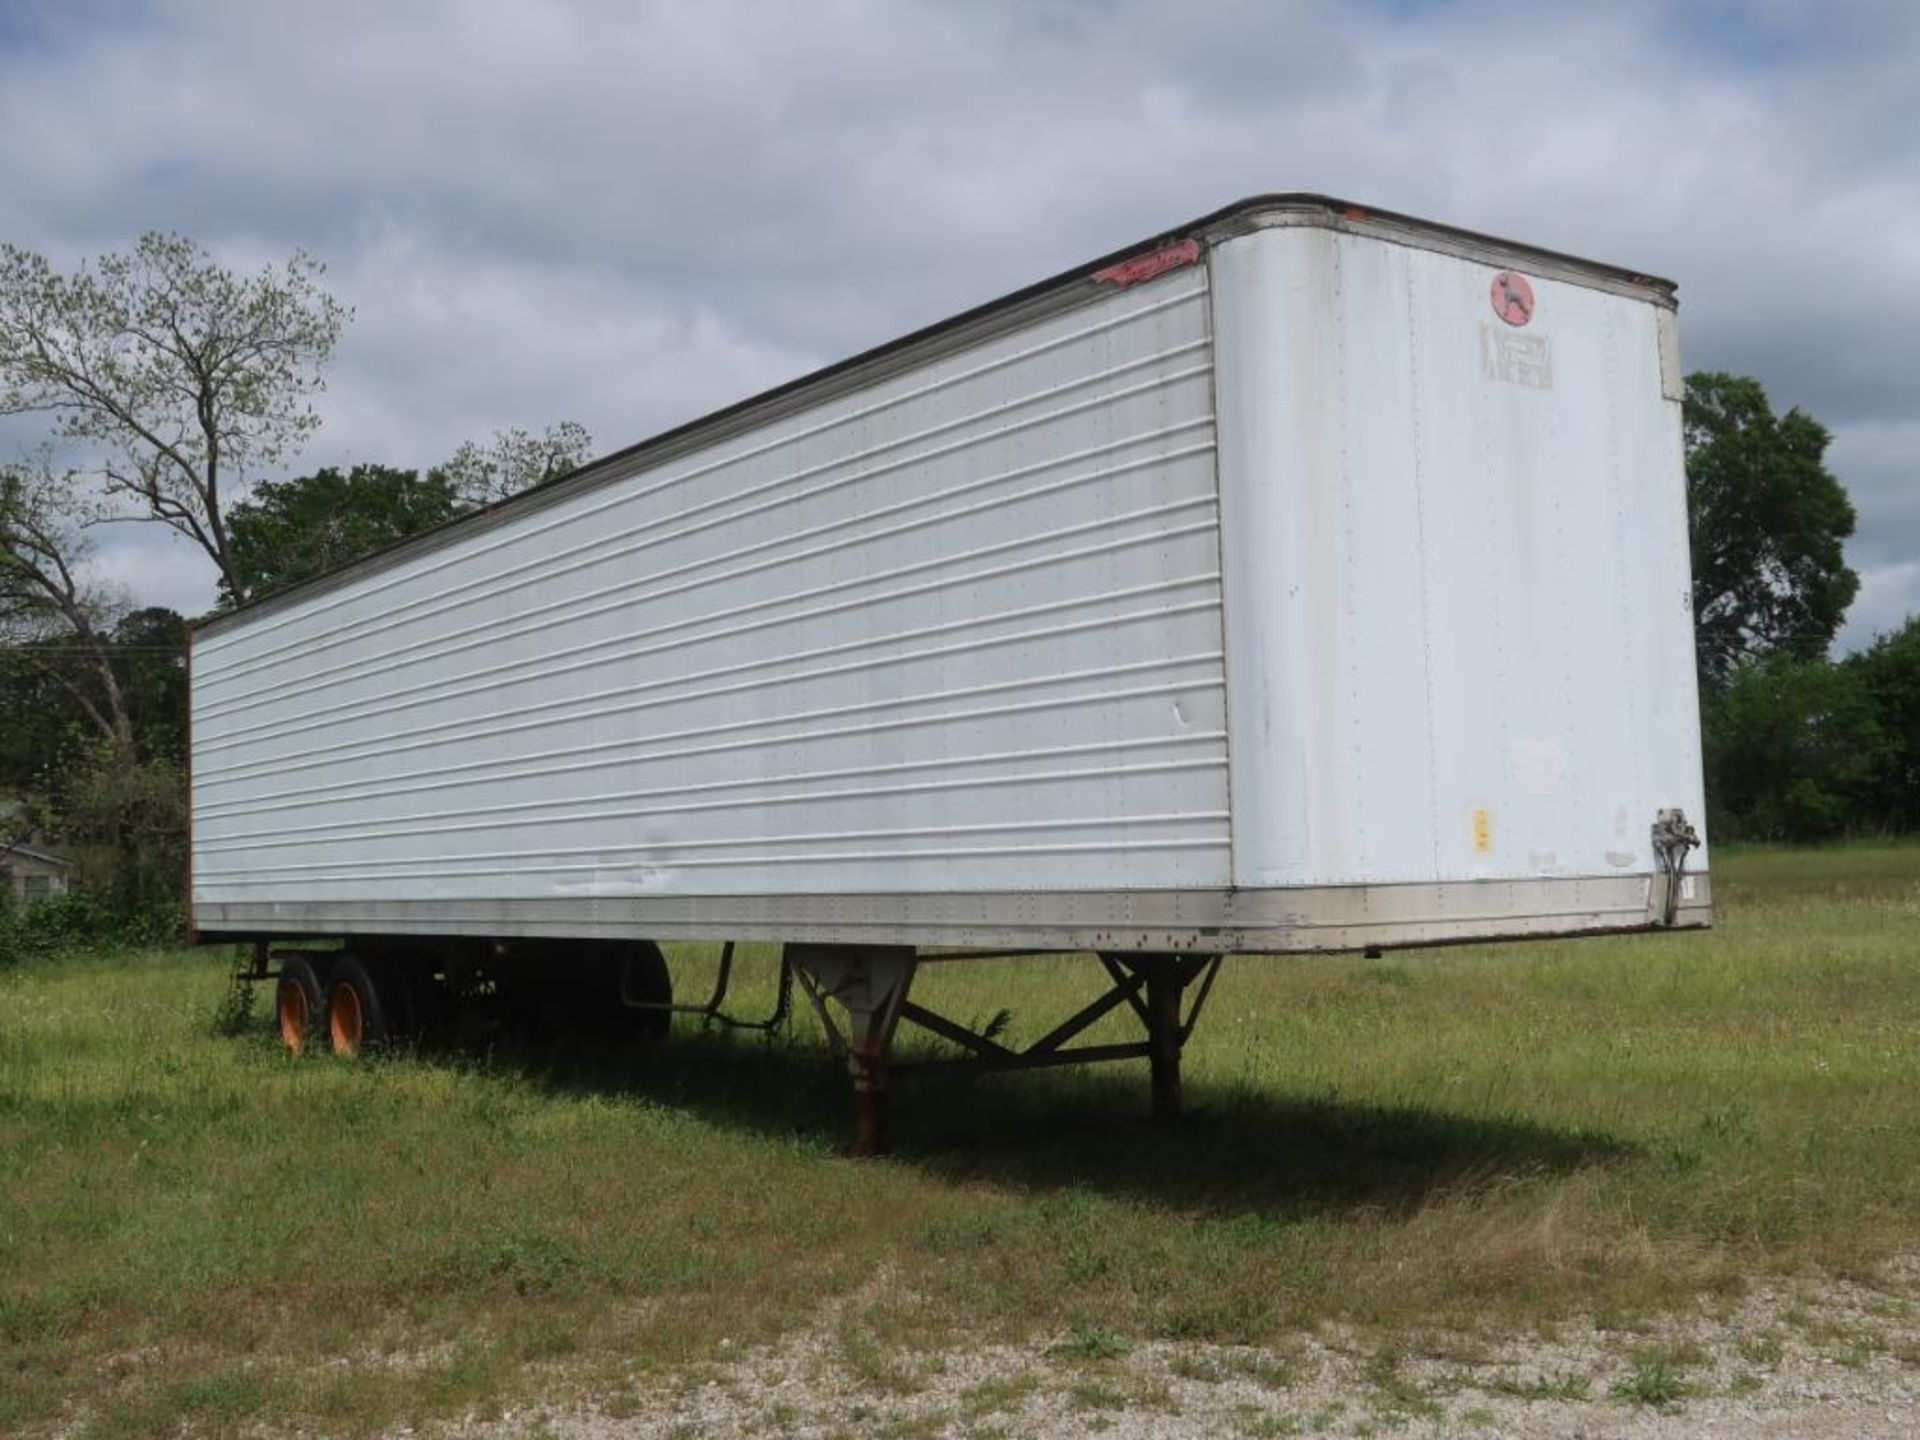 Lot 245 - 1989 Great Dane 48 ft. Sliding Tandem-Axle Box Trailer Model 7311T-48, VIN 1GRAA9629LS032622, Double